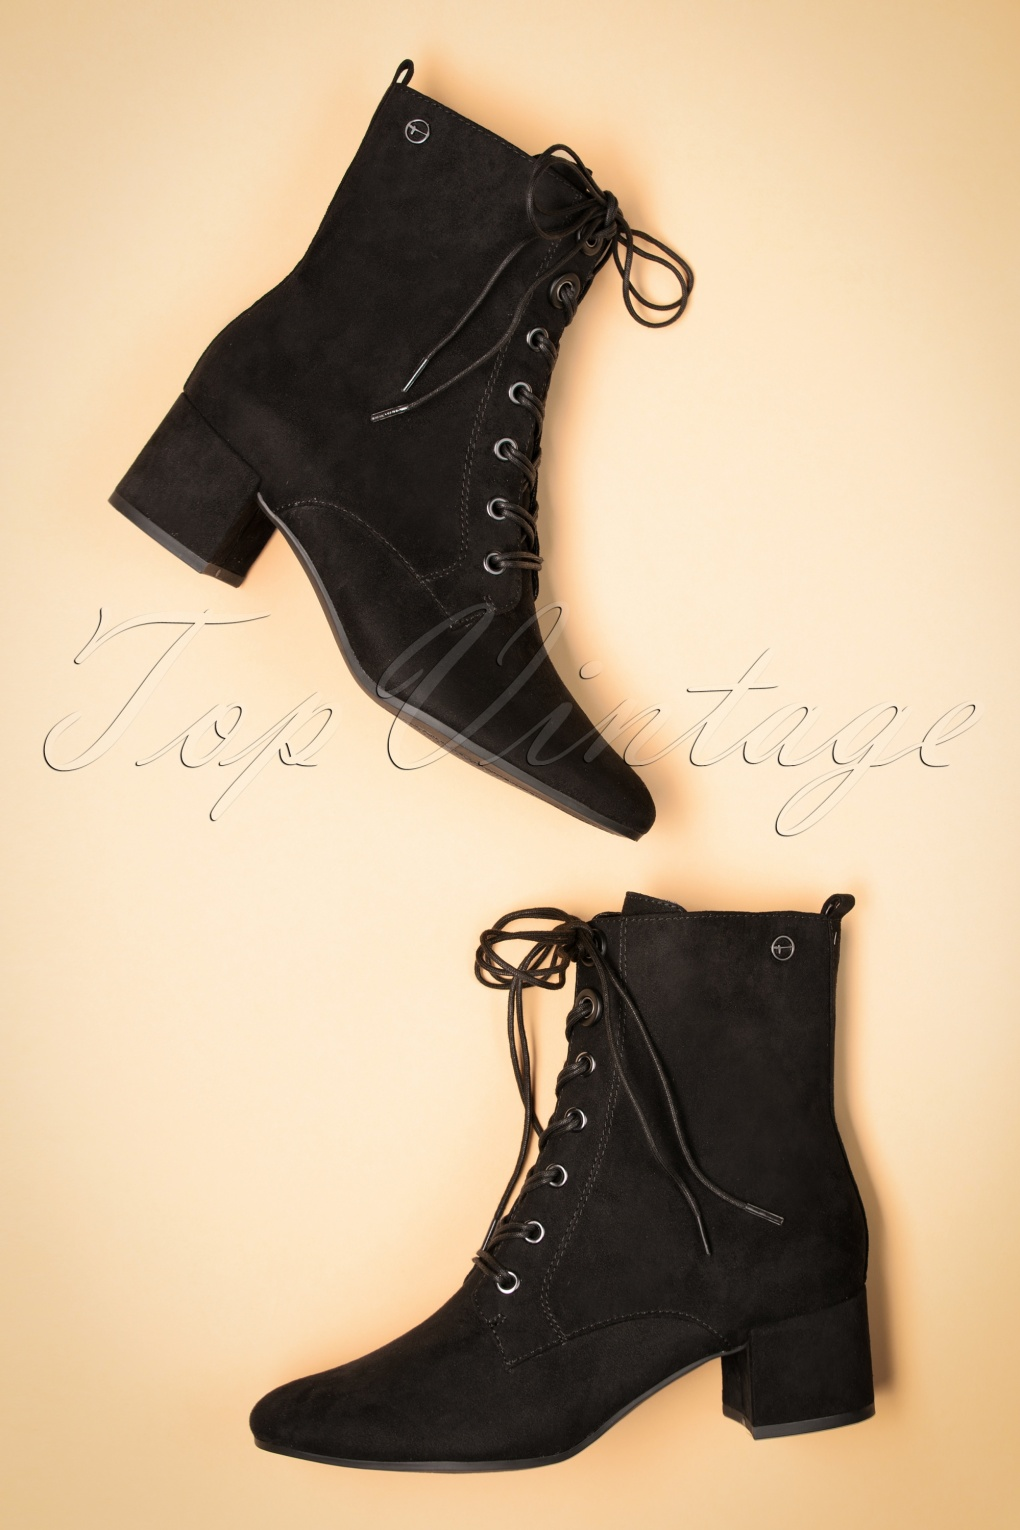 70s Shoes, Platforms, Boots, Heels | 1970s Shoes 70s Livia Lace Up Ankle Booties in Black £63.39 AT vintagedancer.com